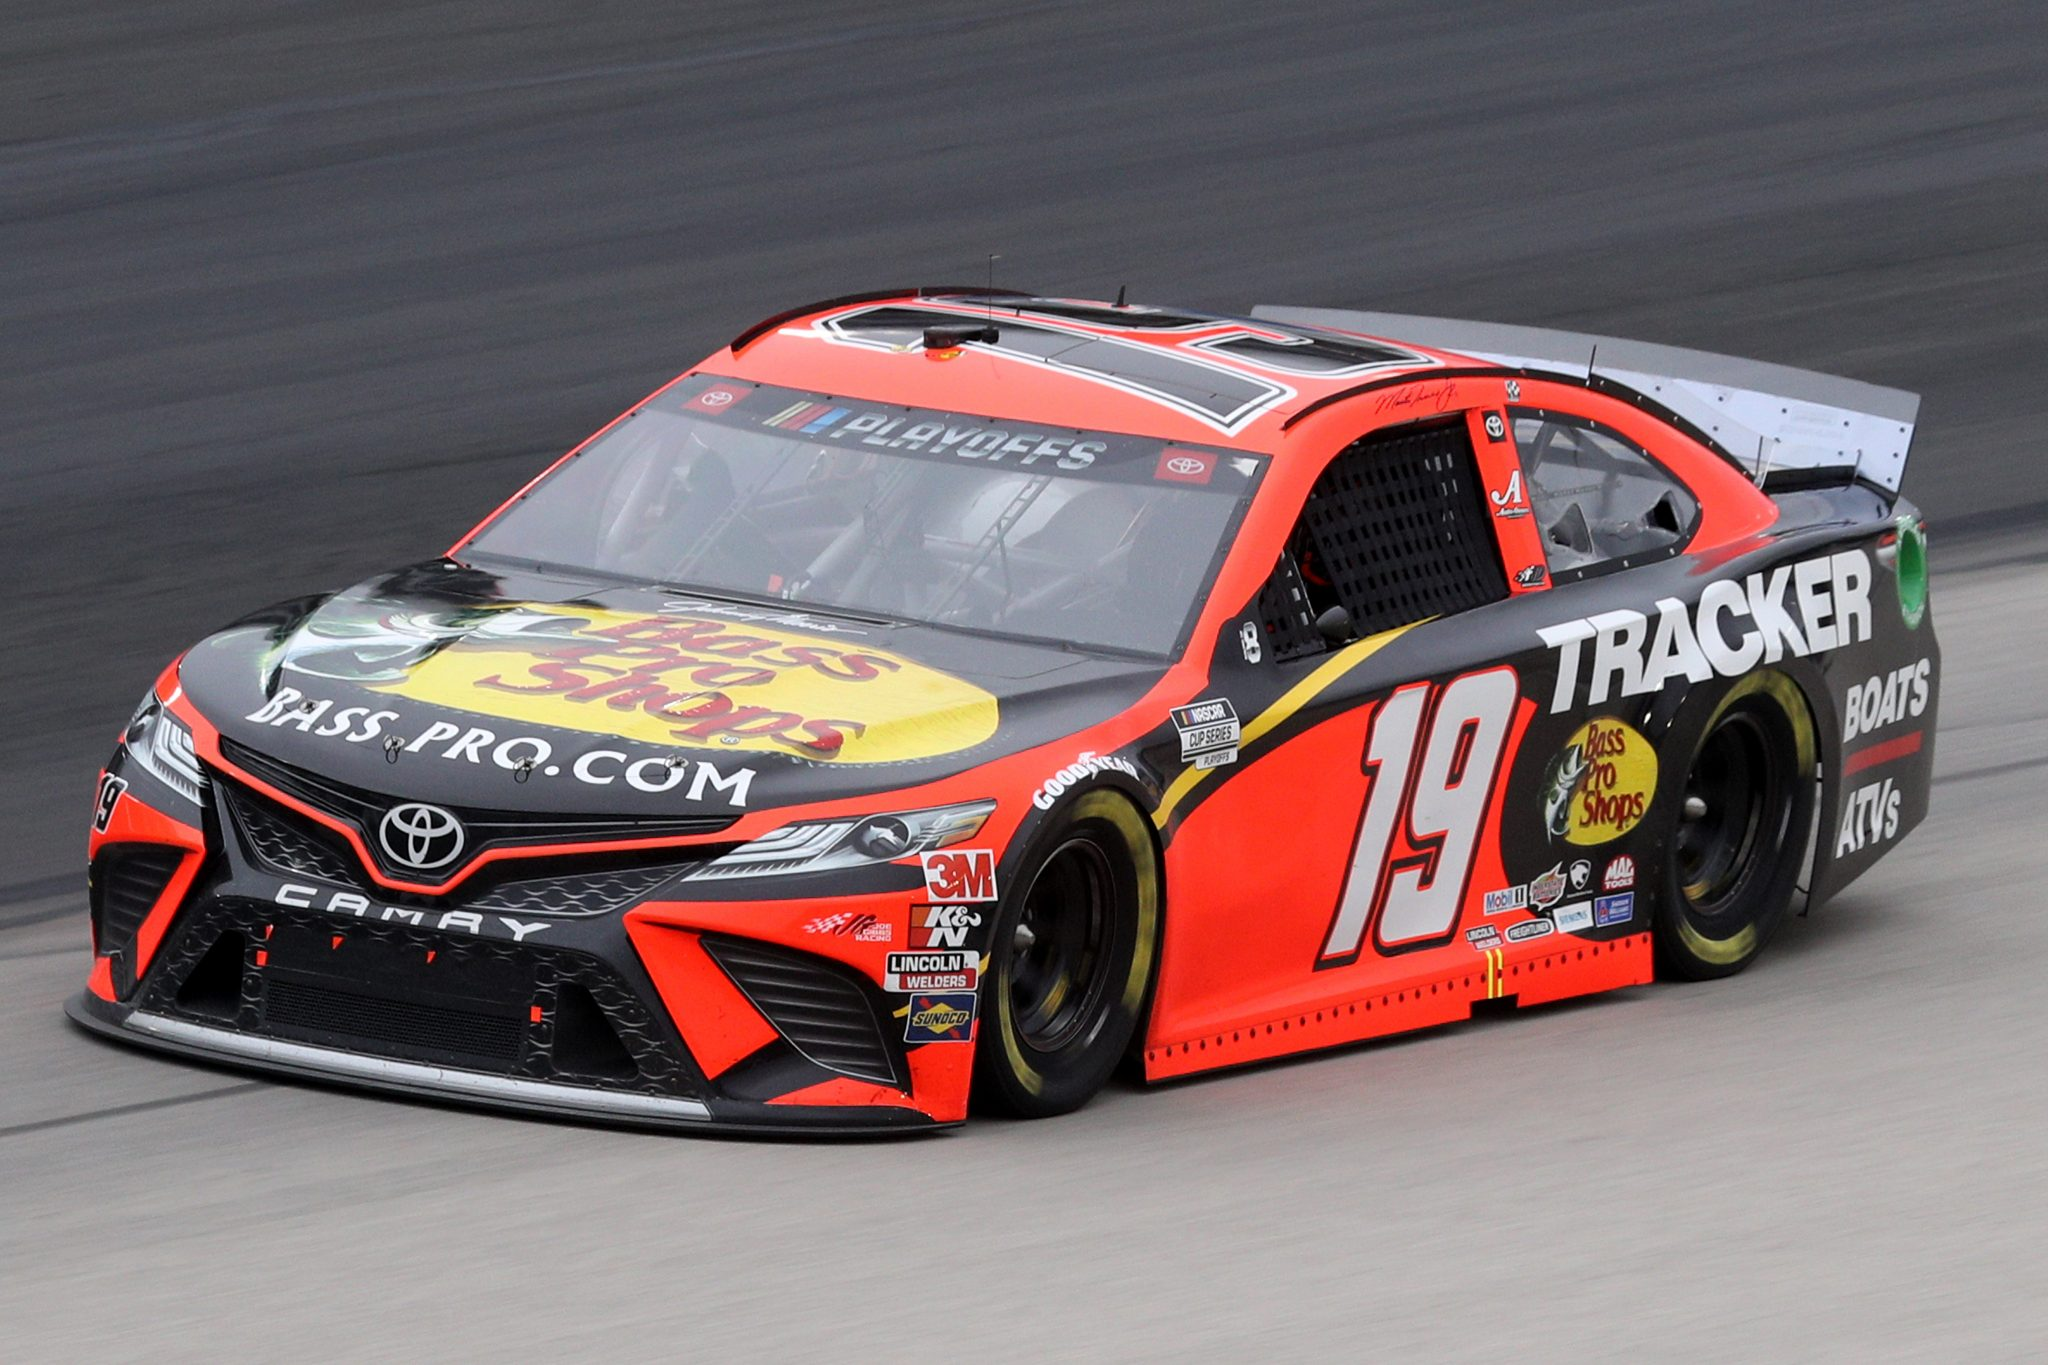 FORT WORTH, TEXAS - OCTOBER 28: Martin Truex Jr., driver of the #19 Bass Pro Shops Toyota, drives during the NASCAR Cup Series Autotrader EchoPark Automotive 500 at Texas Motor Speedway on October 28, 2020 in Fort Worth, Texas. (Photo by Chris Graythen/Getty Images)   Getty Images